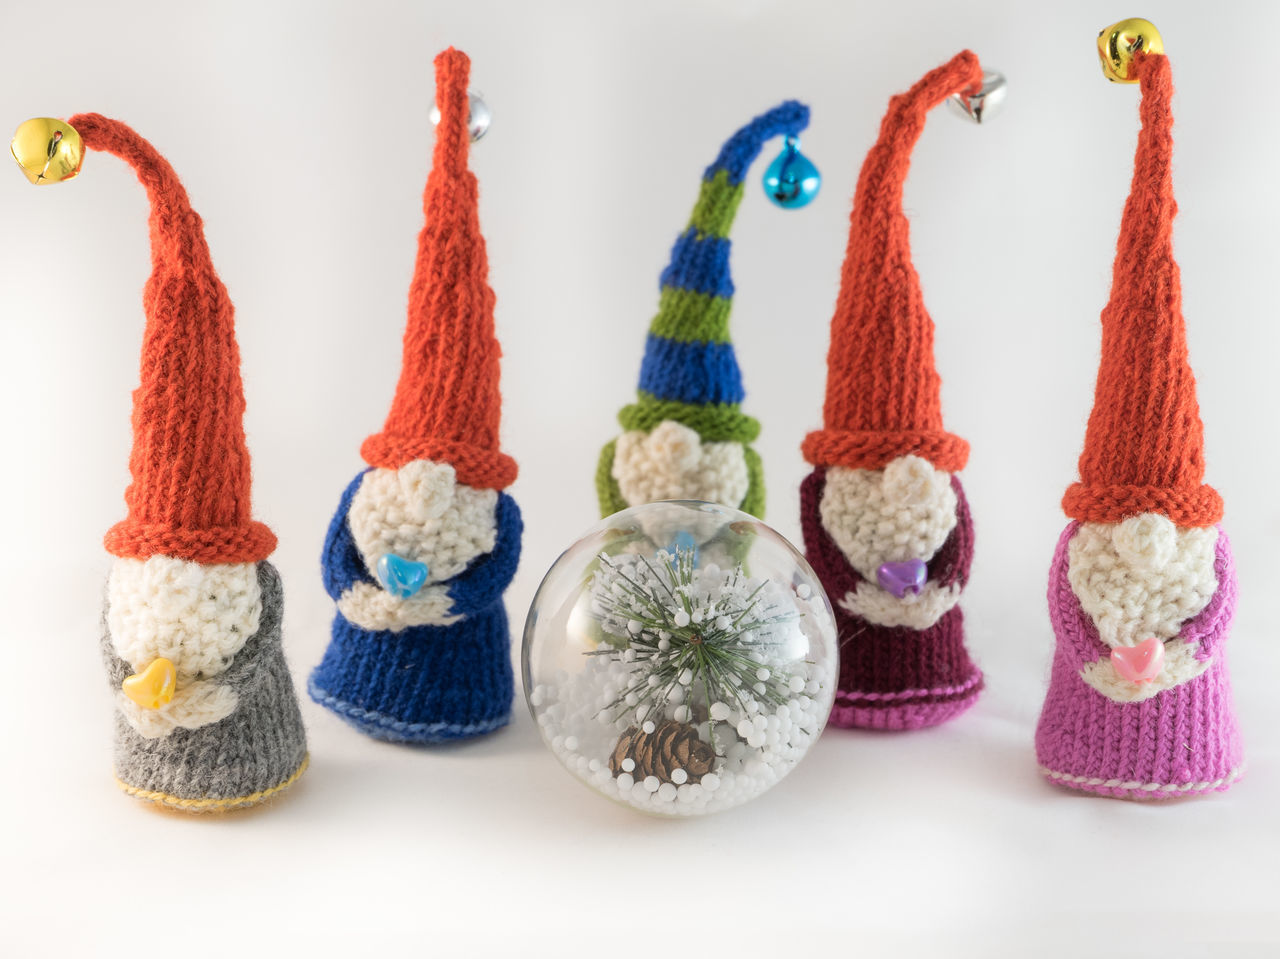 Beard Bell Christmas Christmas Around The World Christmas Decoration Christmas Decorations Christmas Market Christmas Ornament Christmas Spirit Christmas Time Christmastime Decoration Elf Gnome Gnomes Handmade Knitted  Knitting Ornaments Product Photography Red Hat Small Business Small Figure White White Background